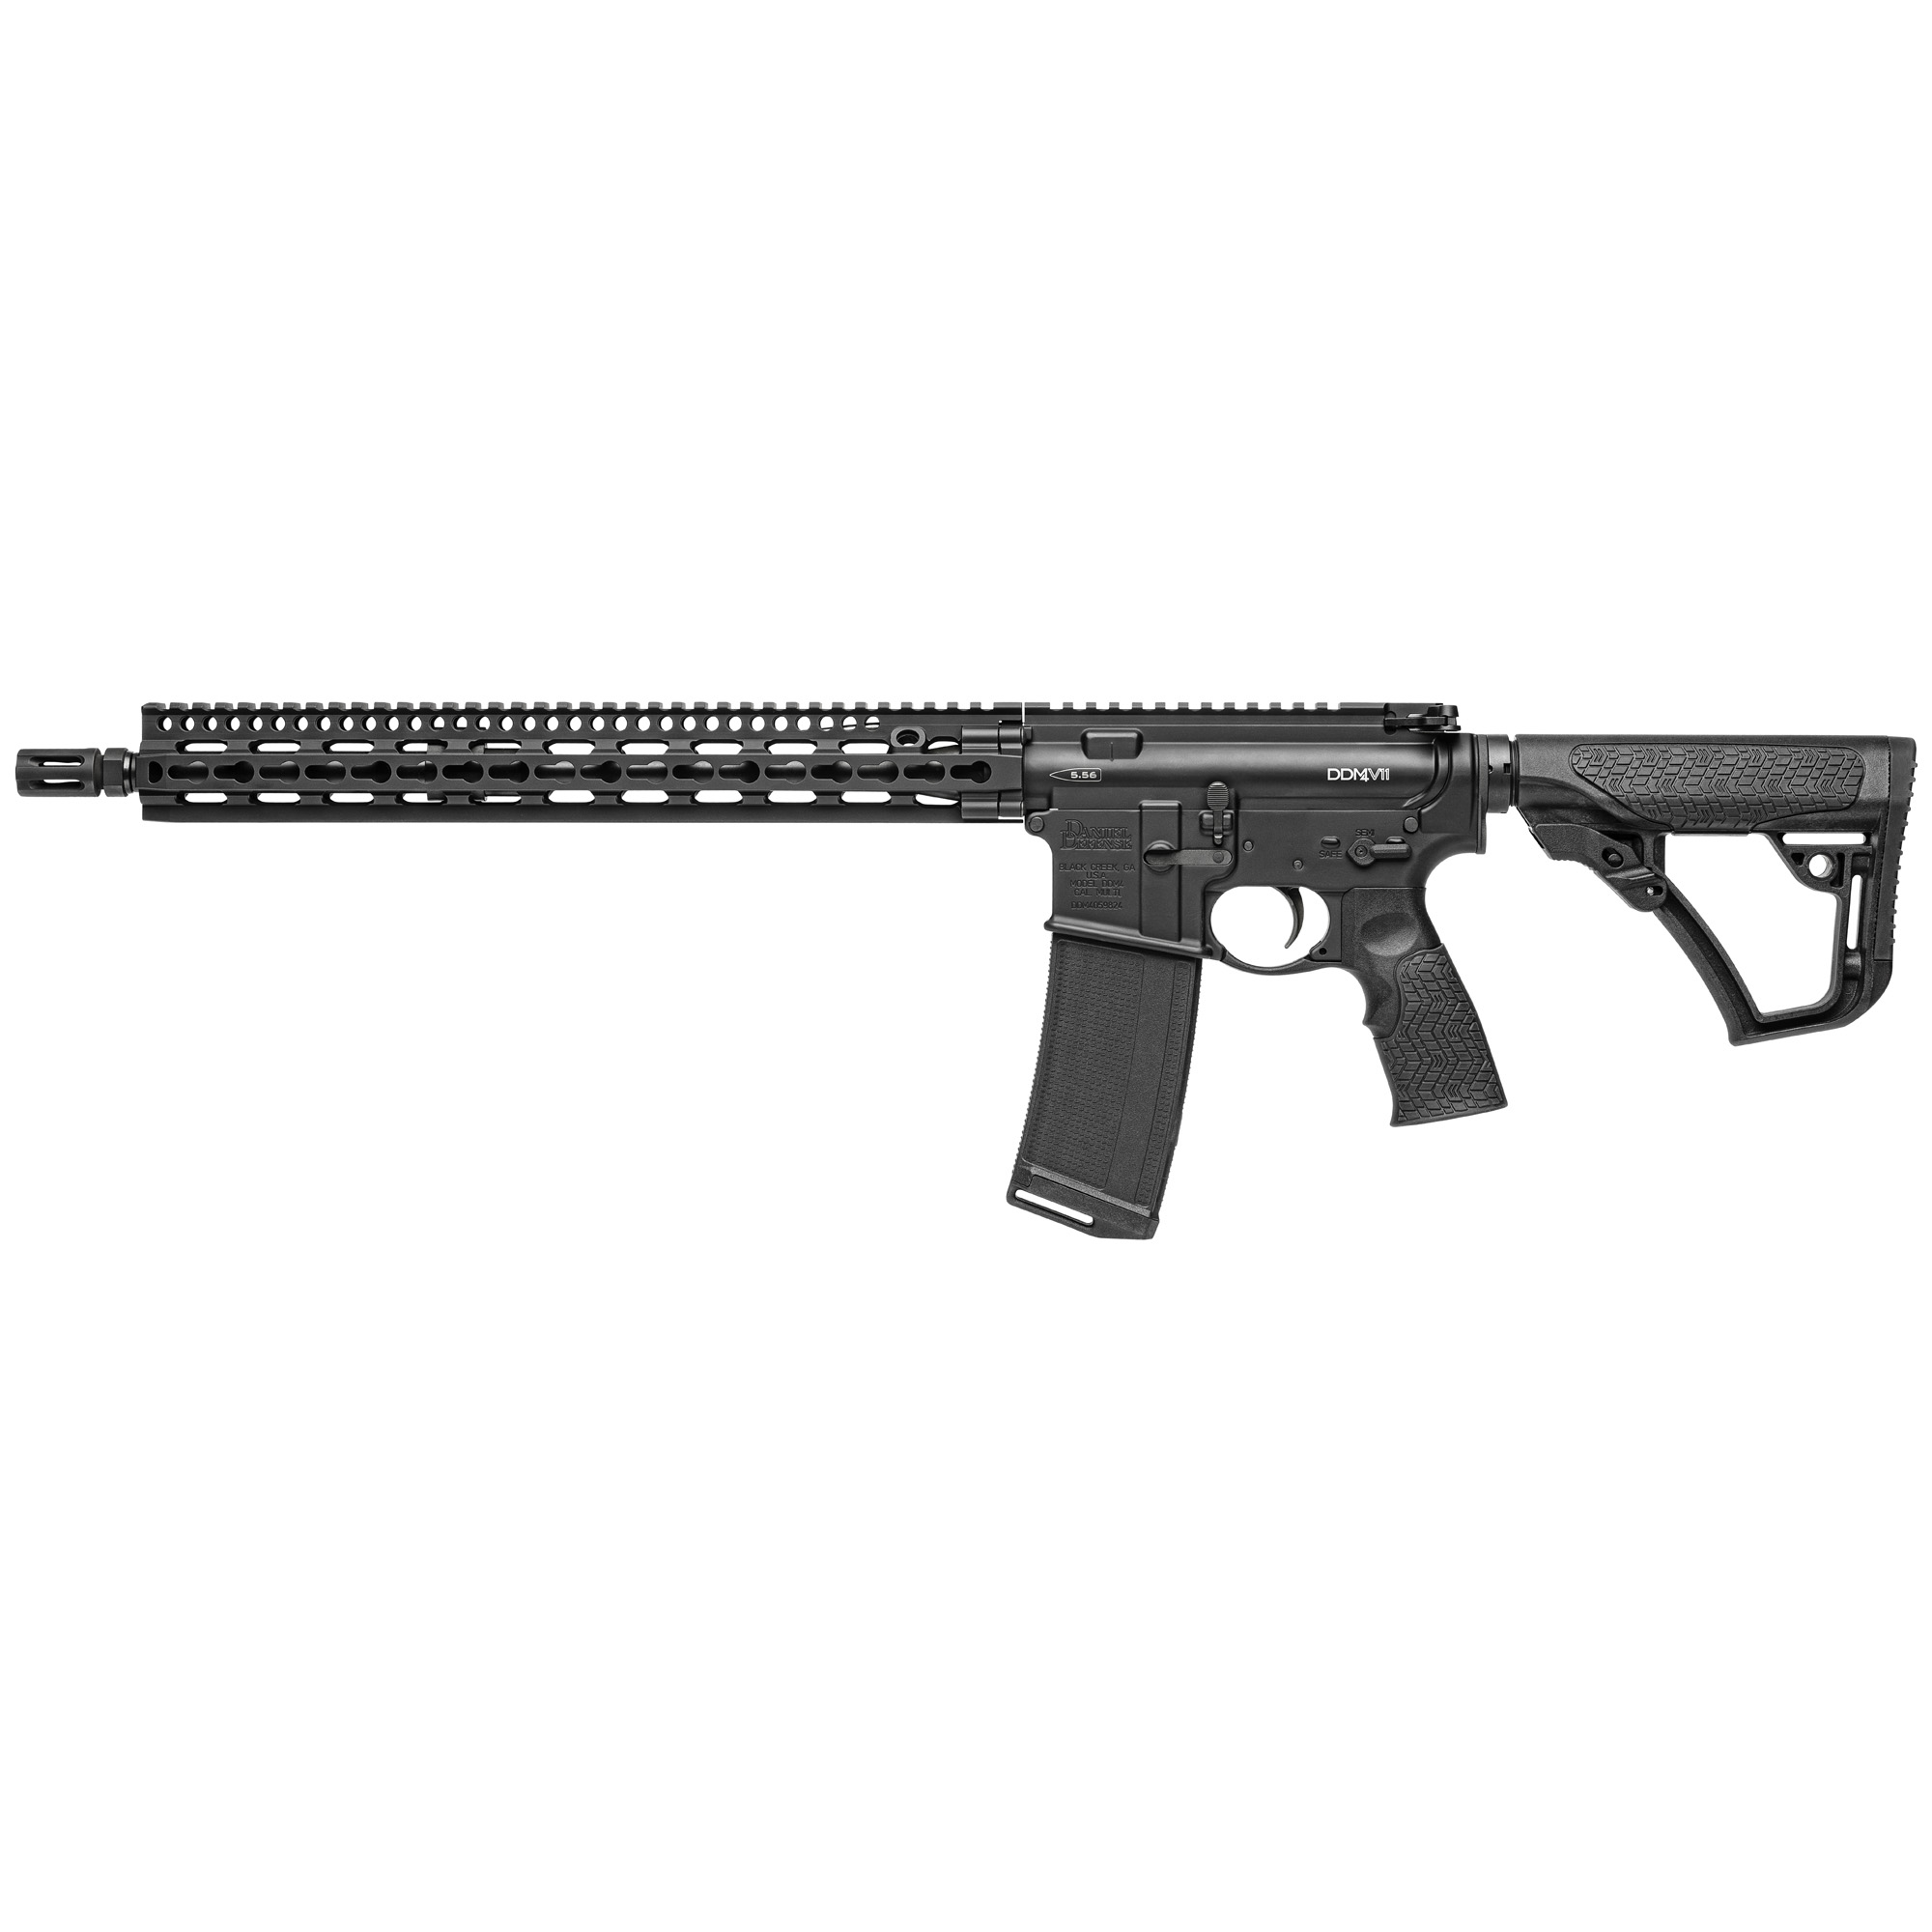 "The Daniel Defense M4 Carbine V11"" based on the popular V9 series"" was designed for shooters who prefer the benefits of the KeyMod system integrated in the new SLiM Rail. KeyMod is a recoil resistant"" two-part"" direct attachment method for accessories that offers outstanding ""return-to-zero"" when accessories are removed and reinstalled. The new SLiM Rail 15.0 offers incredible weight savings as well as superior cooling"" ergonomics"" and modularity while maintaining the strength and durability expected from Daniel Defense."